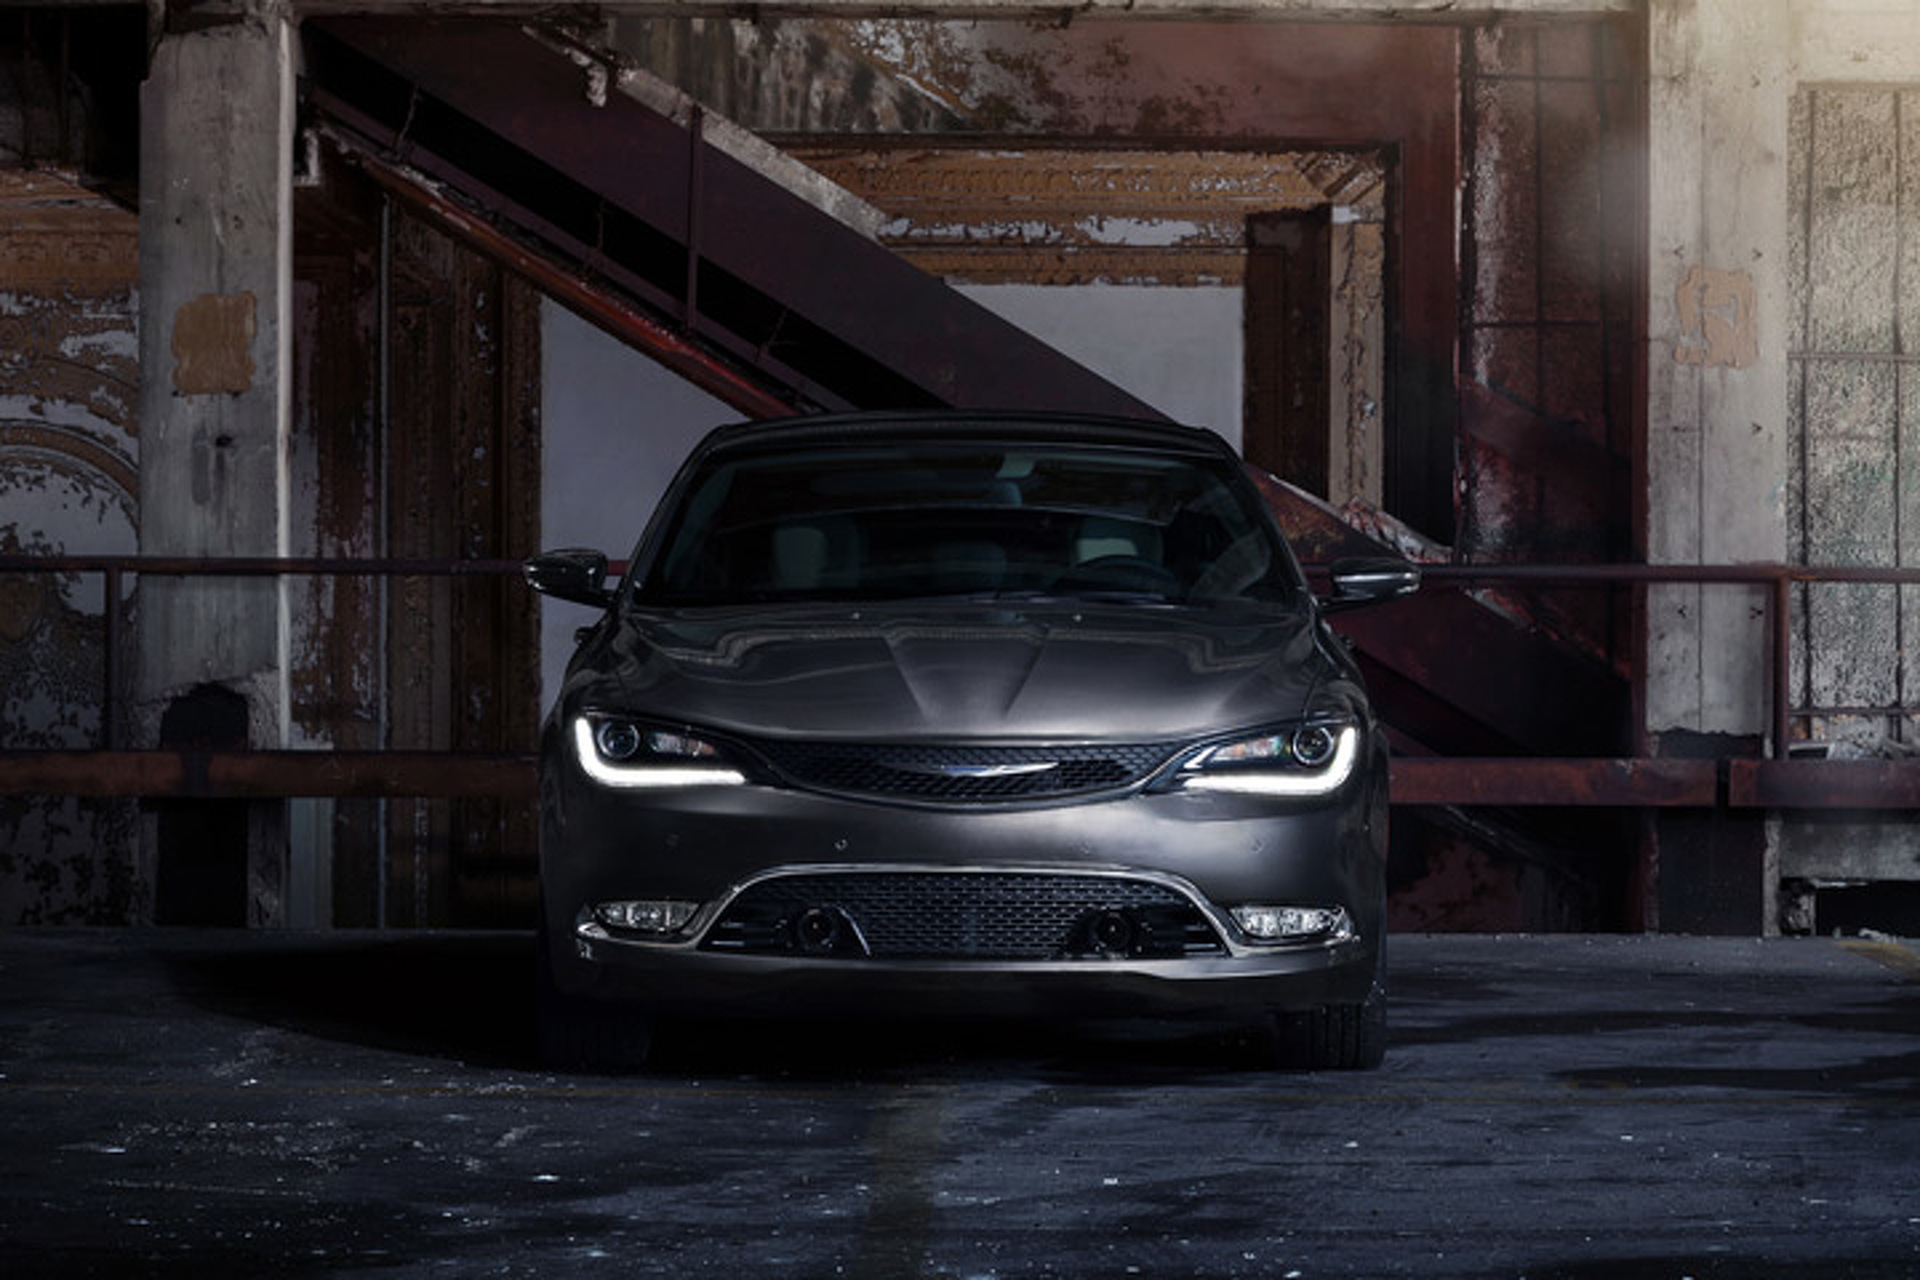 Chrysler 200 Coupe Looks Good But Will It Ever Be Produced